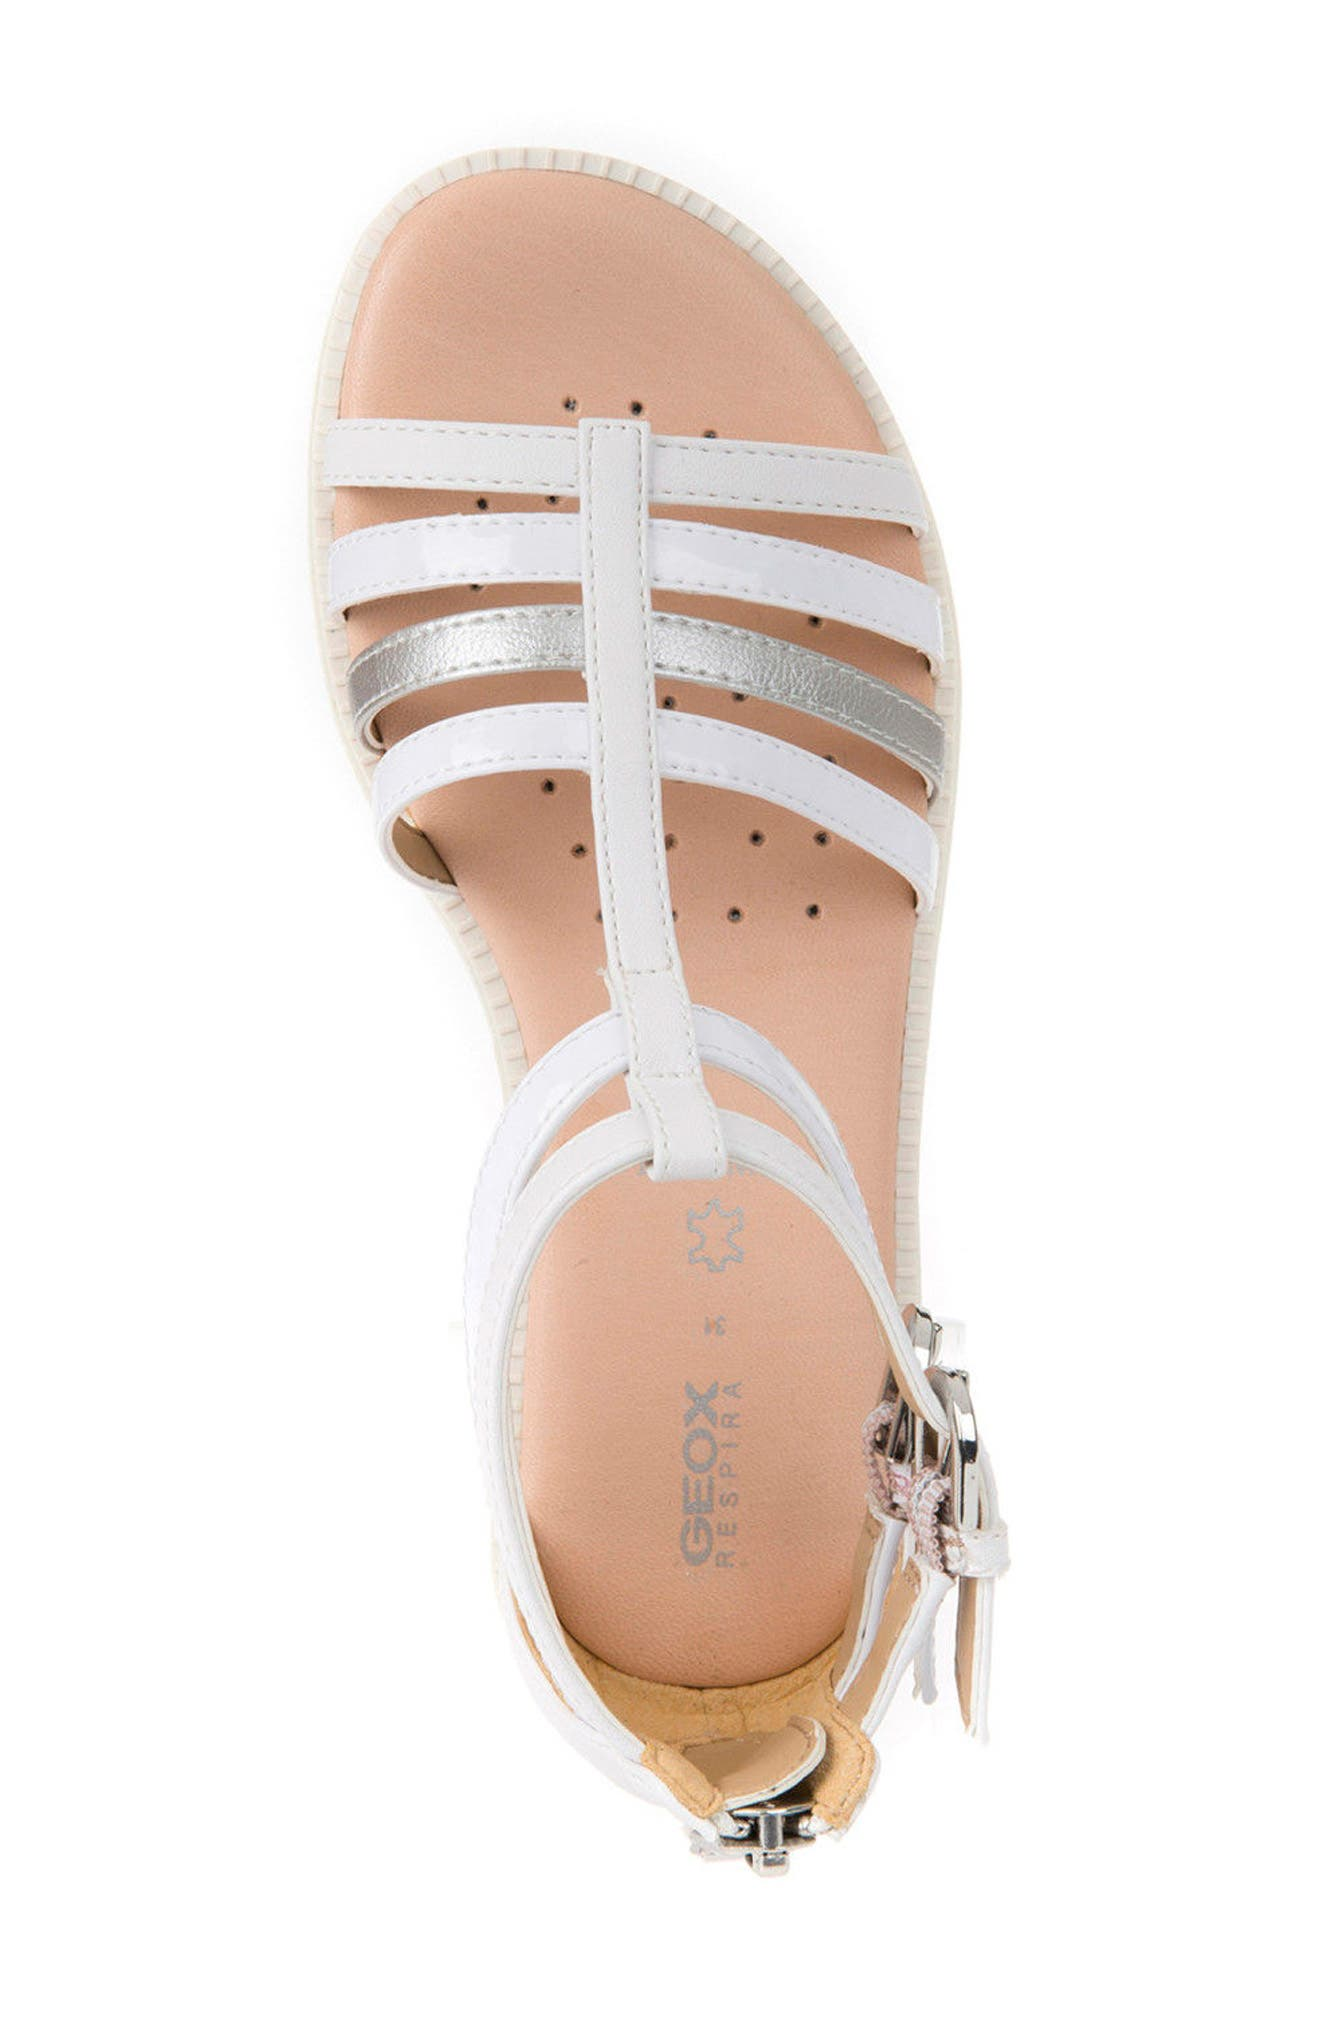 Karly Sandal,                             Alternate thumbnail 5, color,                             White